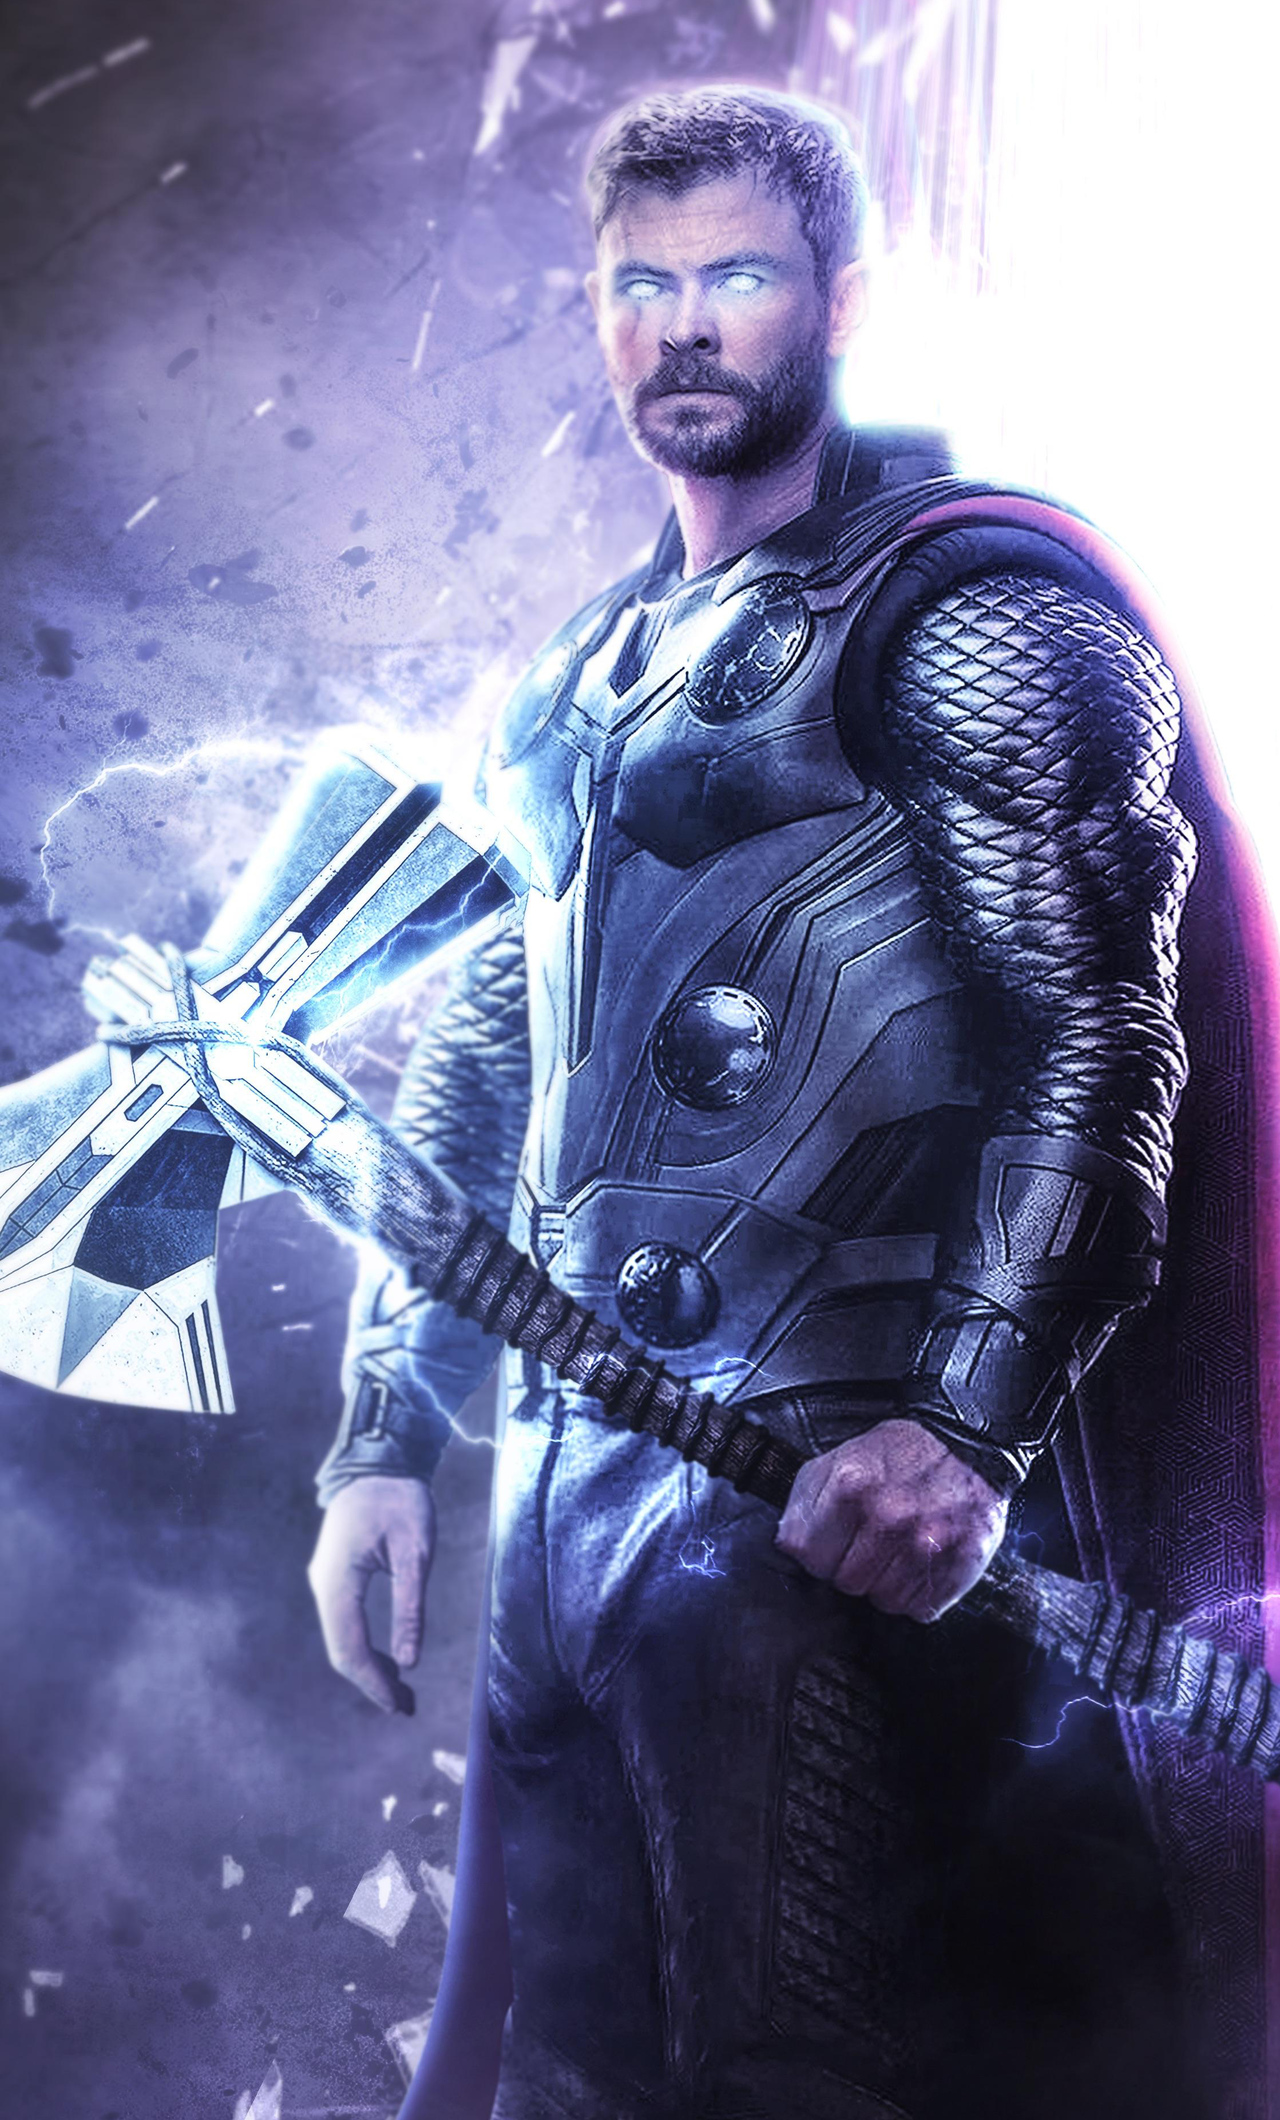 1280x2120 Thor Avengers Endgame Iphone 6 Hd 4k Wallpapers Images Backgrounds Photos And Pictures